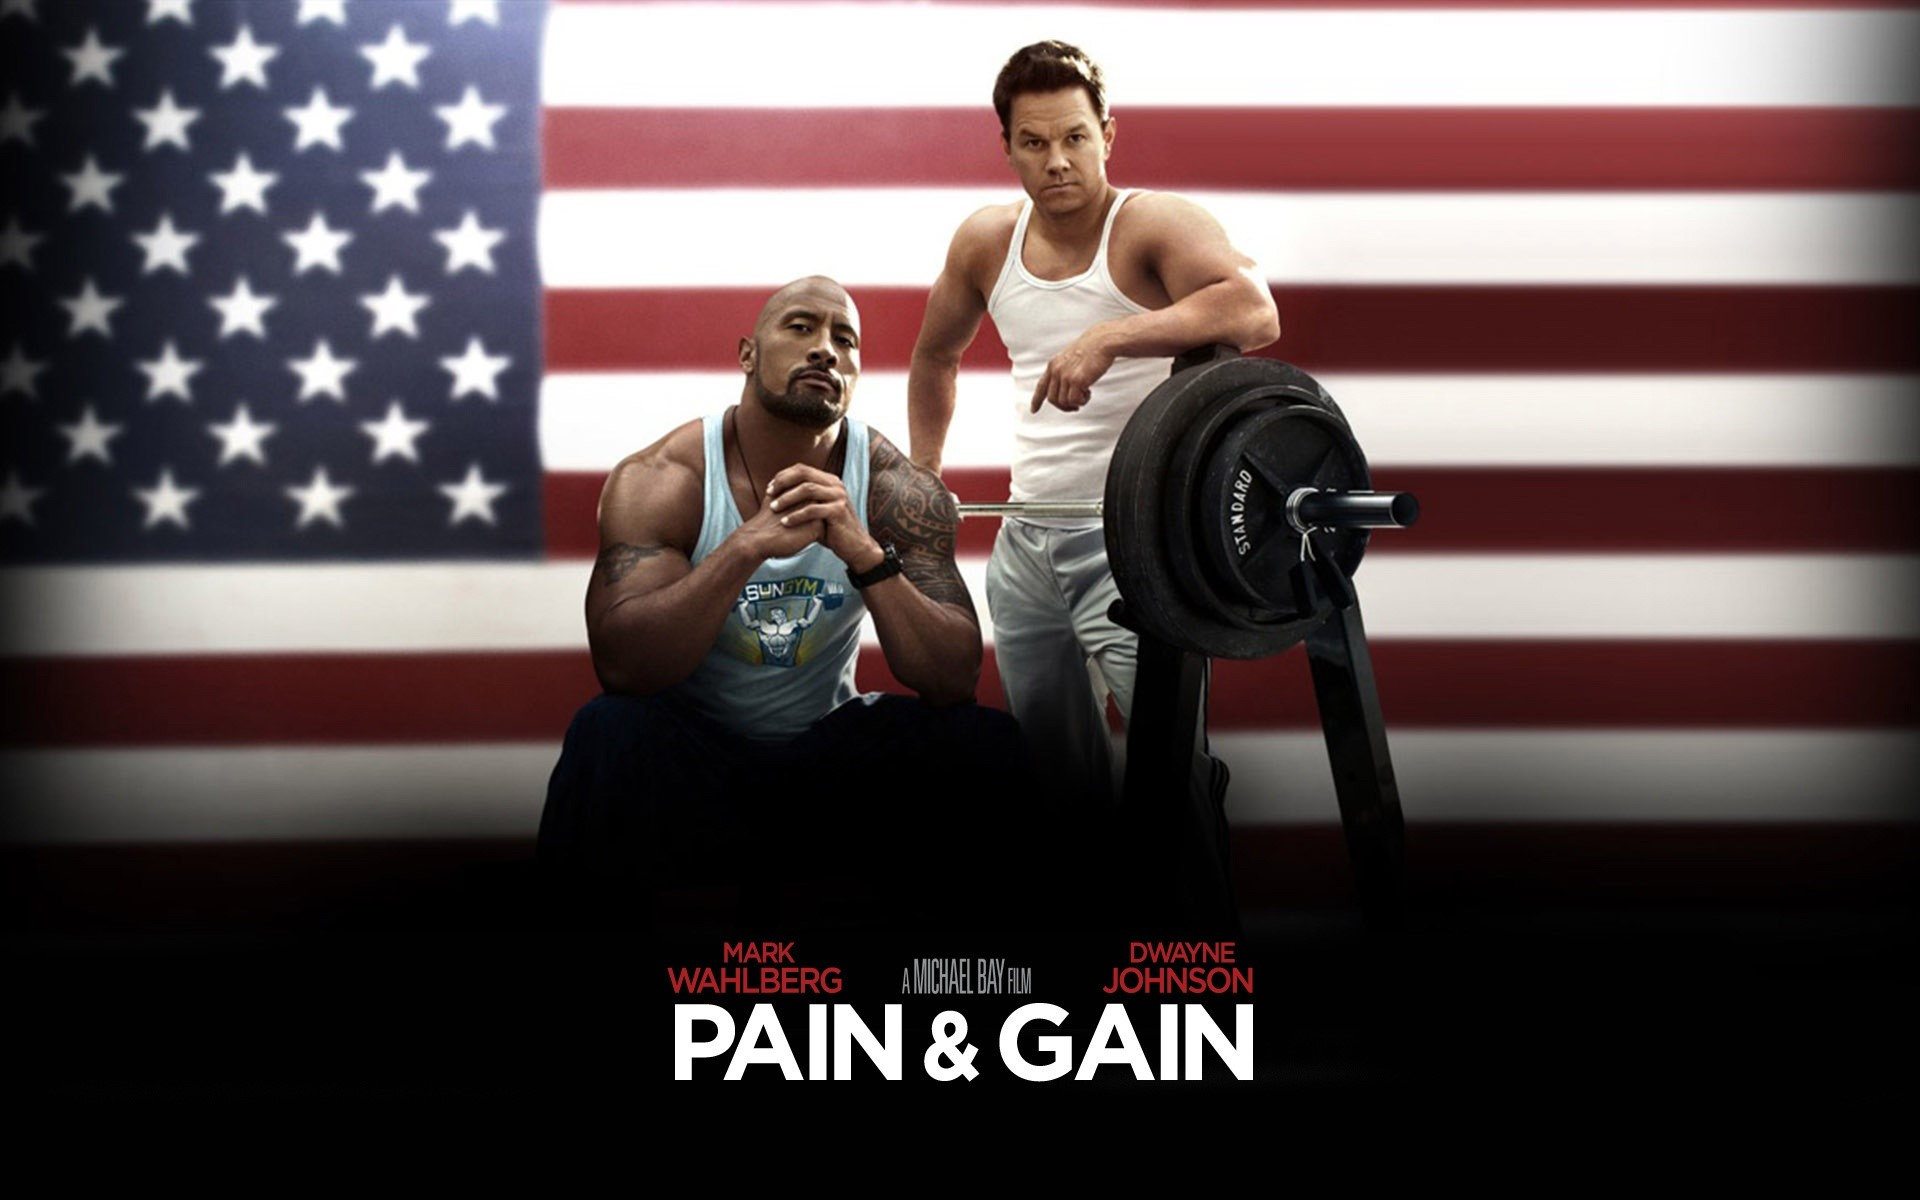 Wallpaper Pain and gain movie